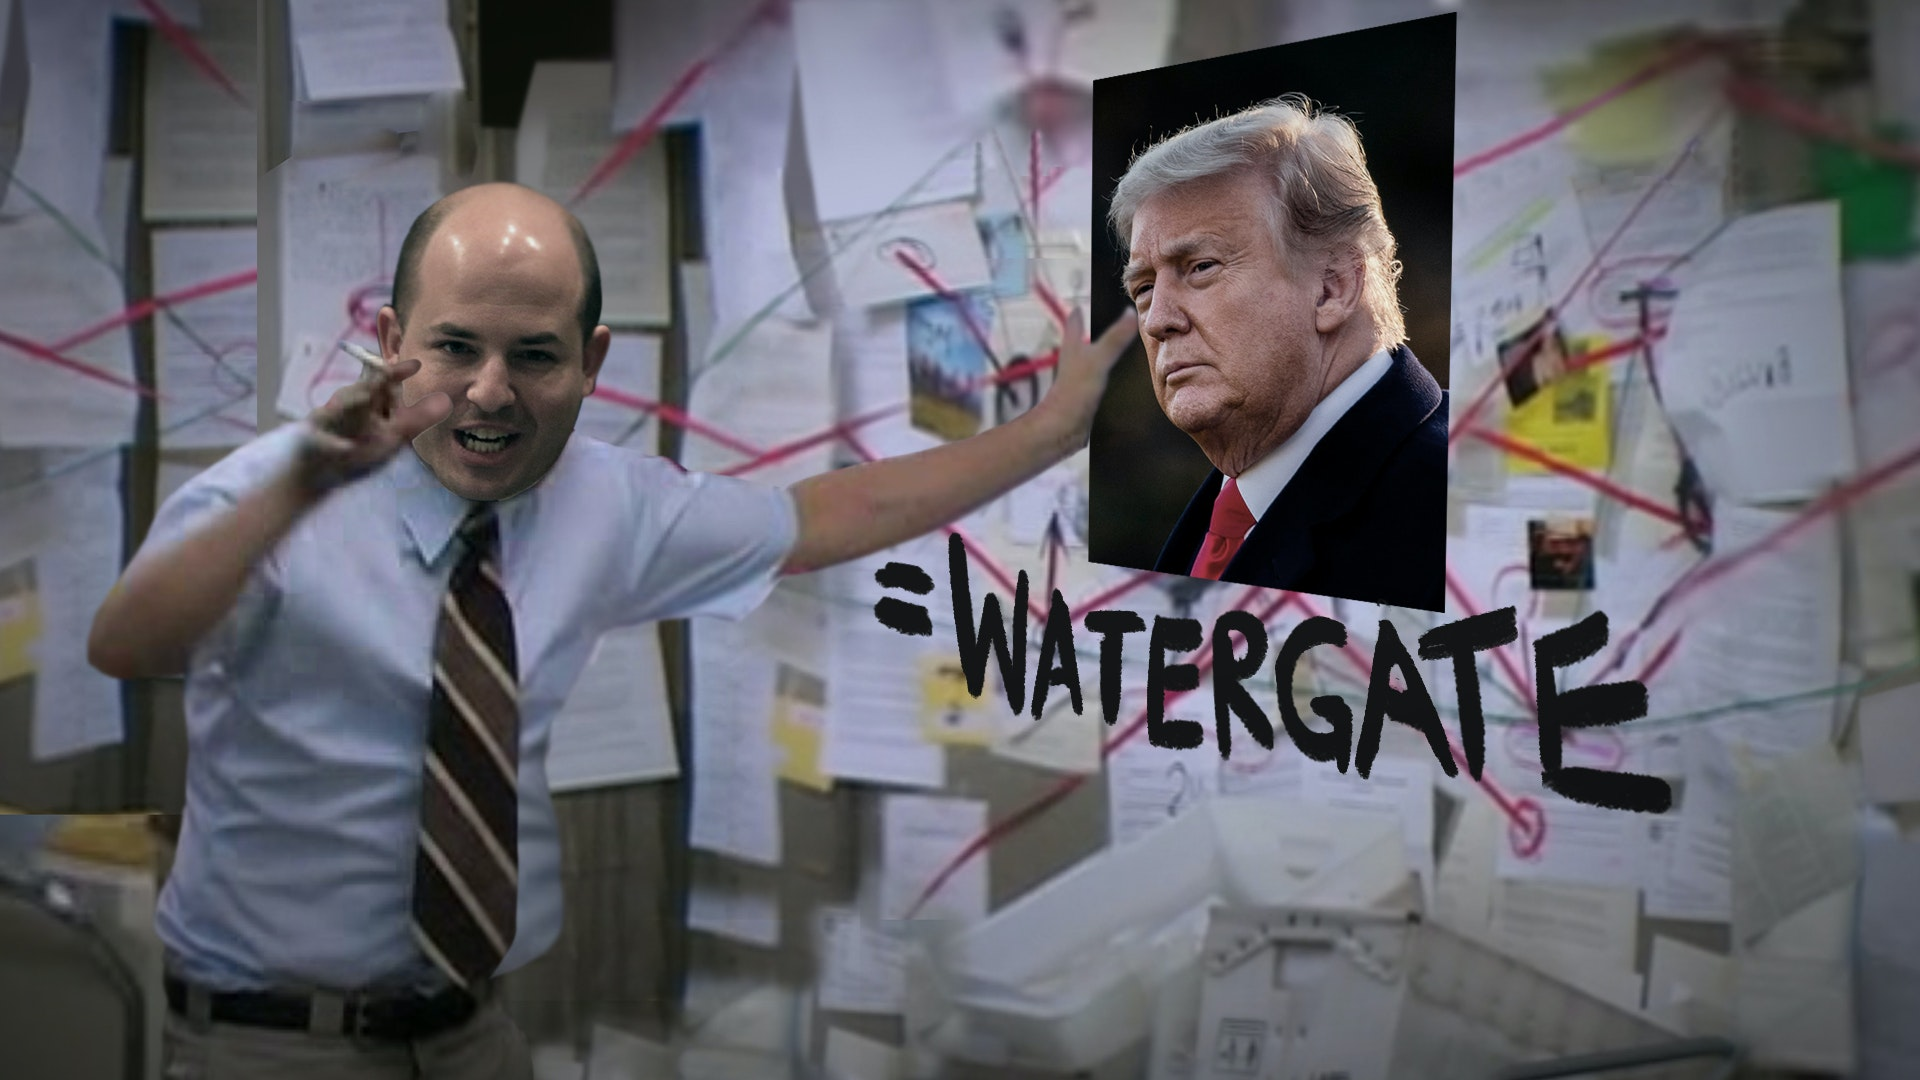 Ep. 673 - Everything Is Worse Than Watergate